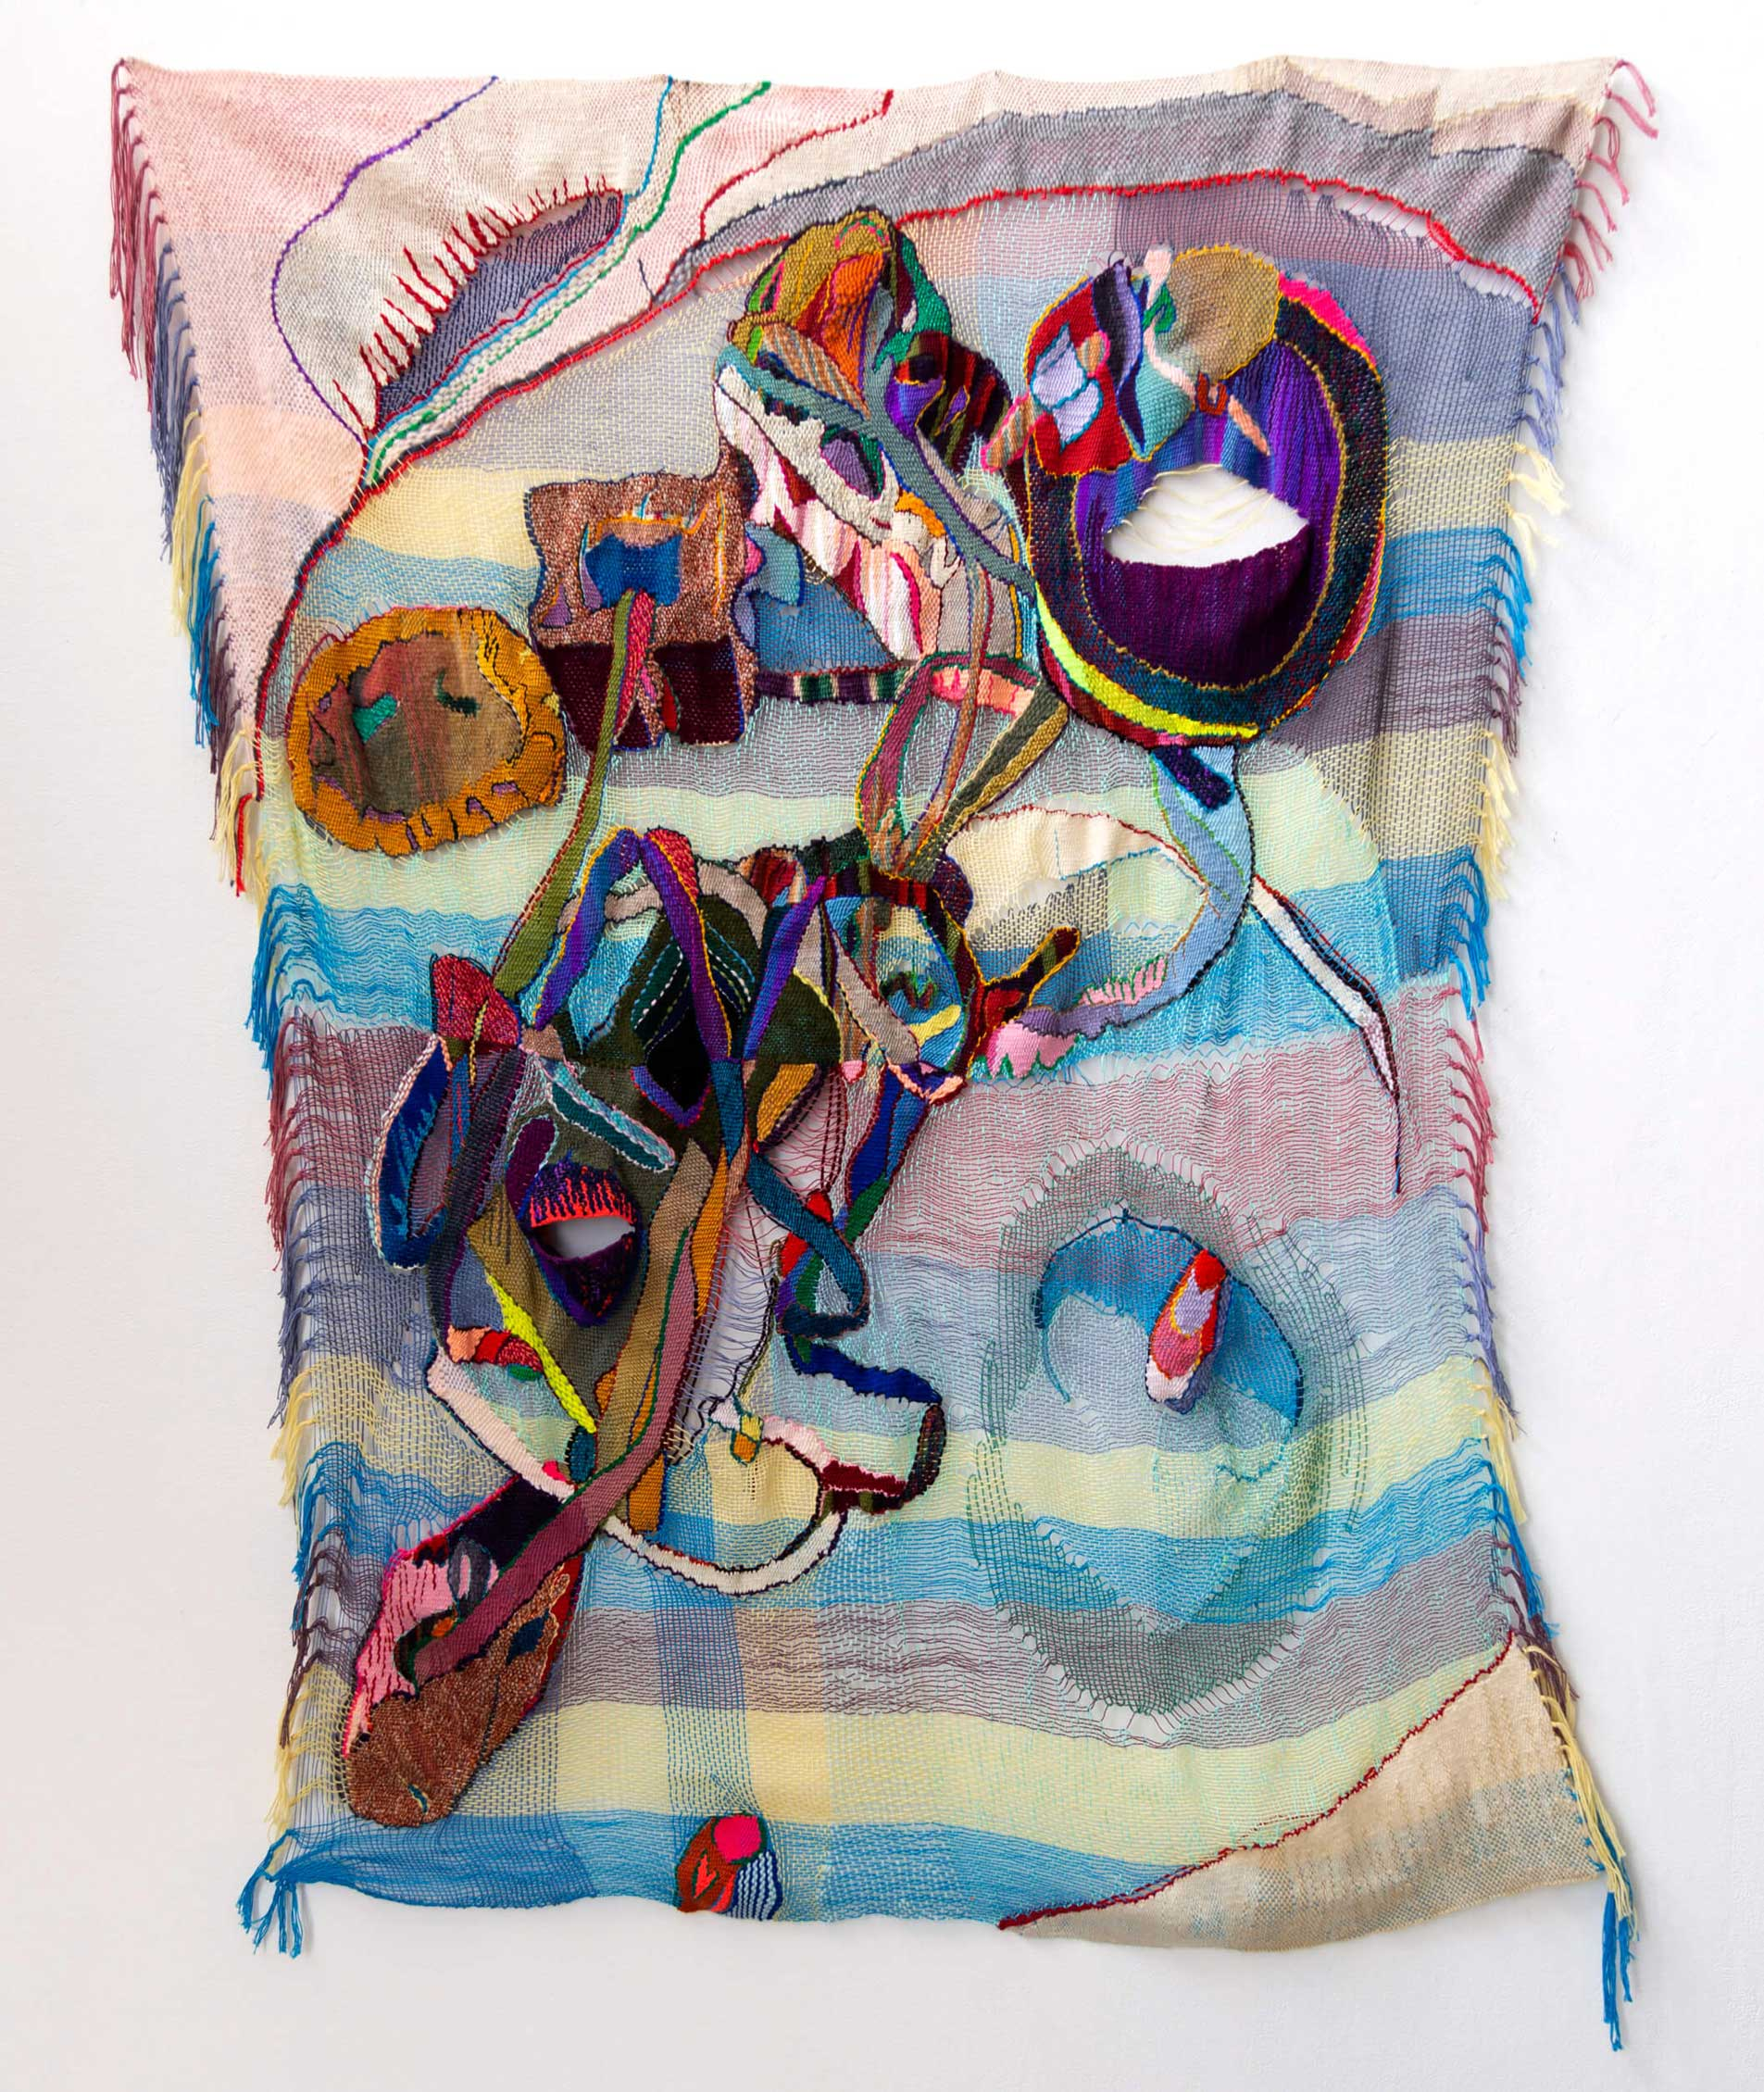 Large, vertical orientation colorful weaving. Abstract, three-dimensional woven shapes adorn the surface.